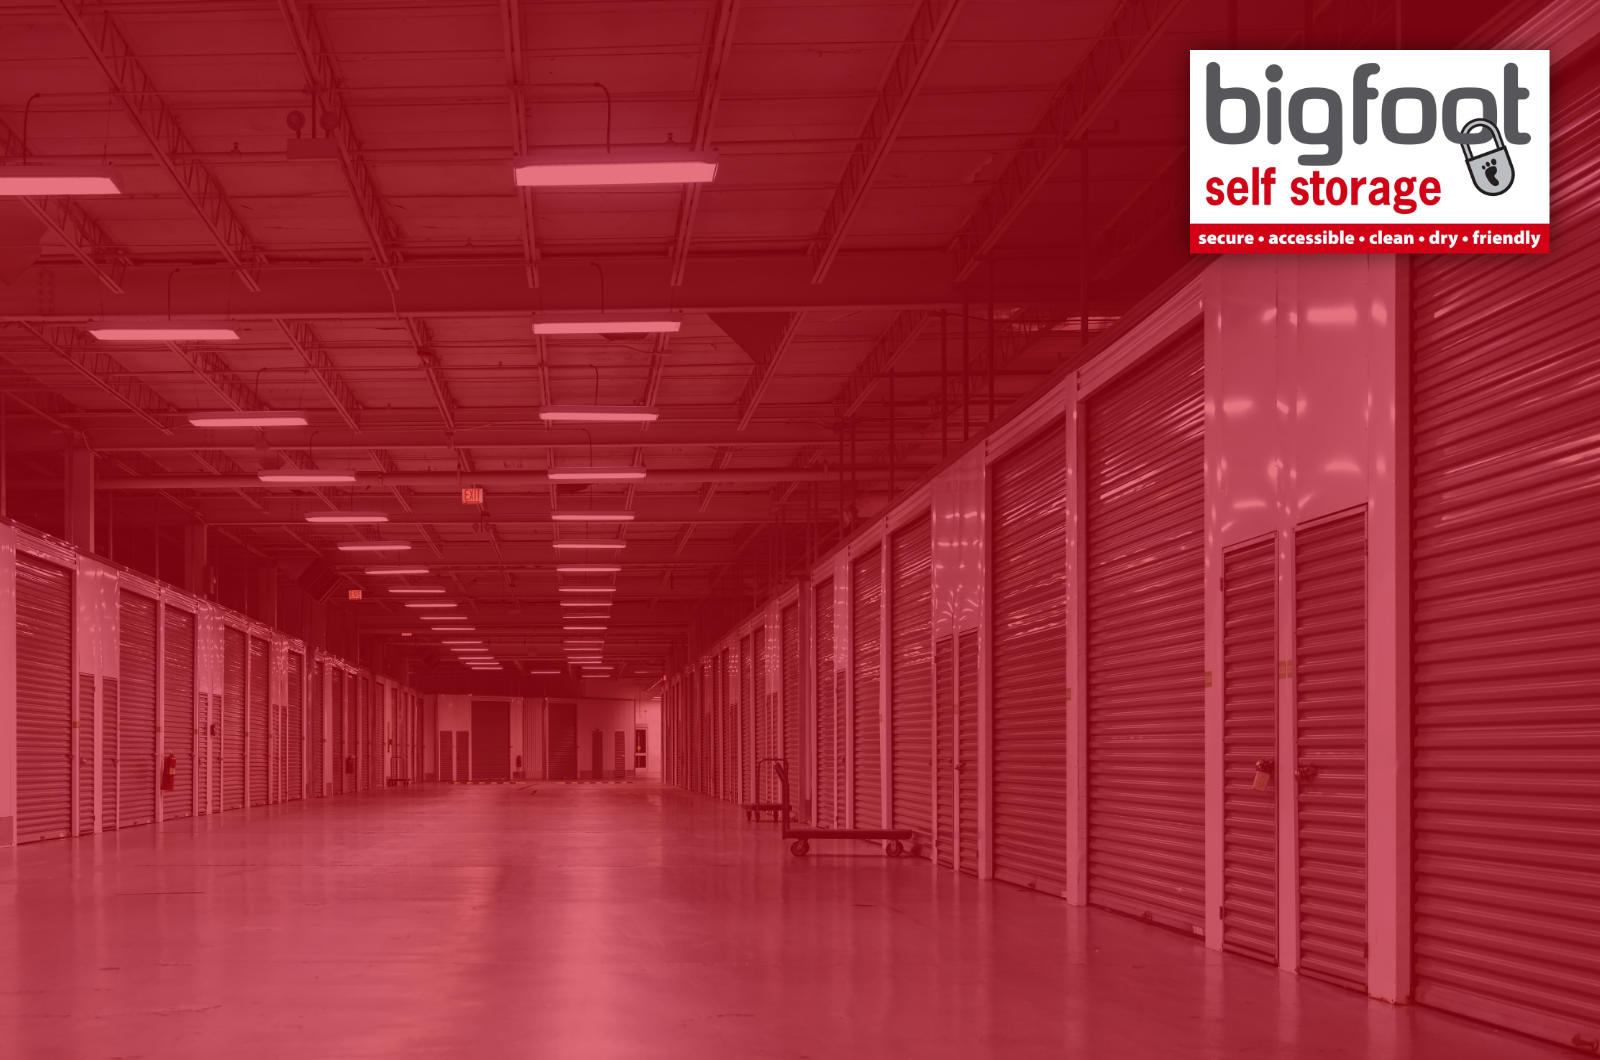 Businesses that can benefit from storage units